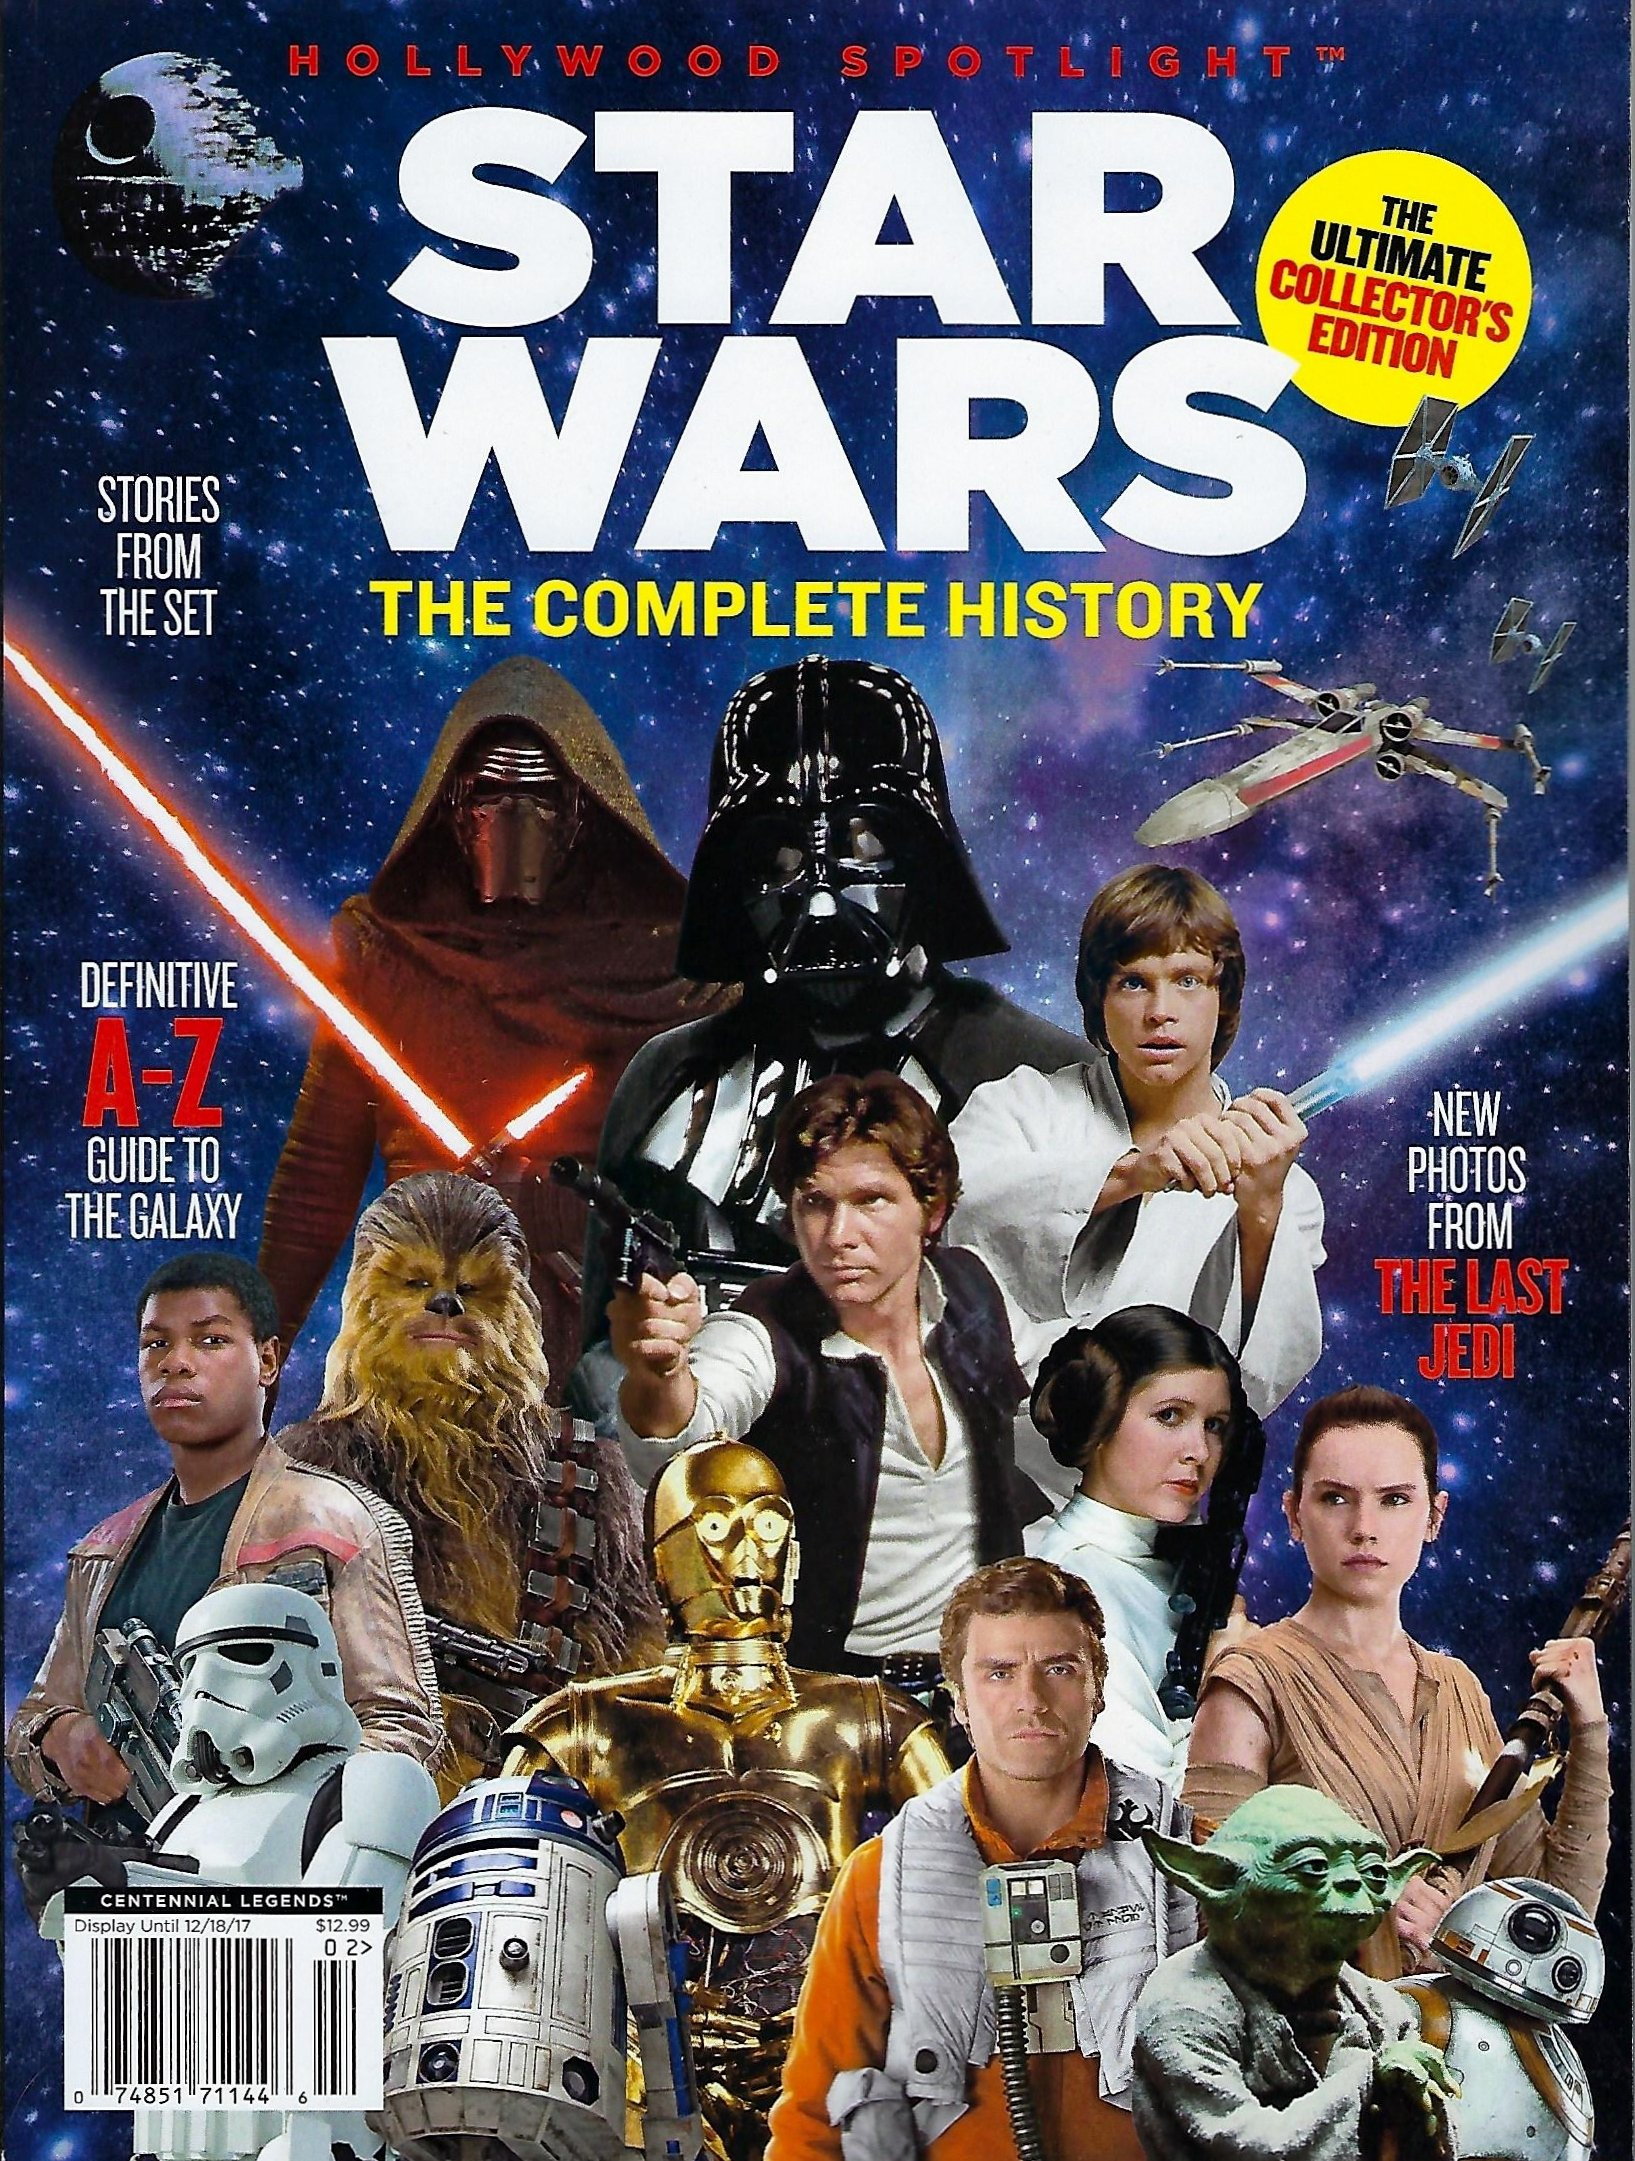 Hollywood Spotlight Presents Star Wars: The Complete History